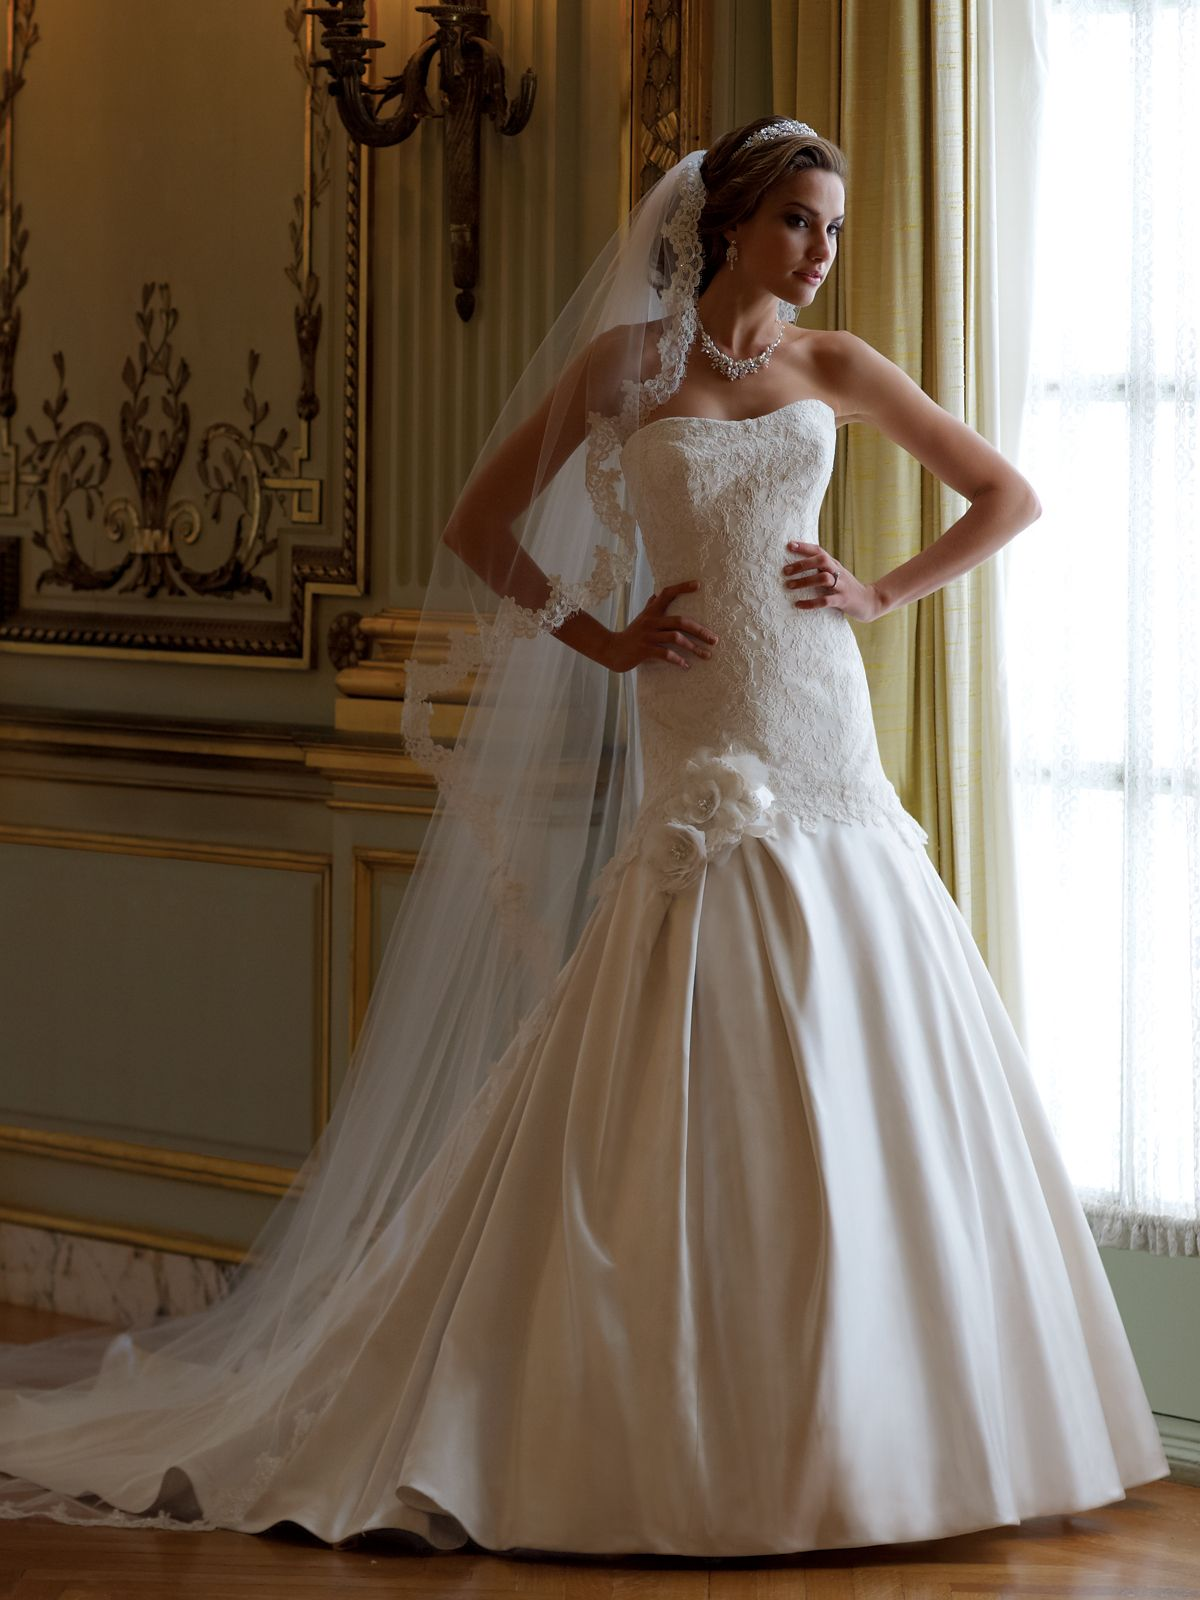 Strapless luxurious satin and lace aline wedding dress with softly